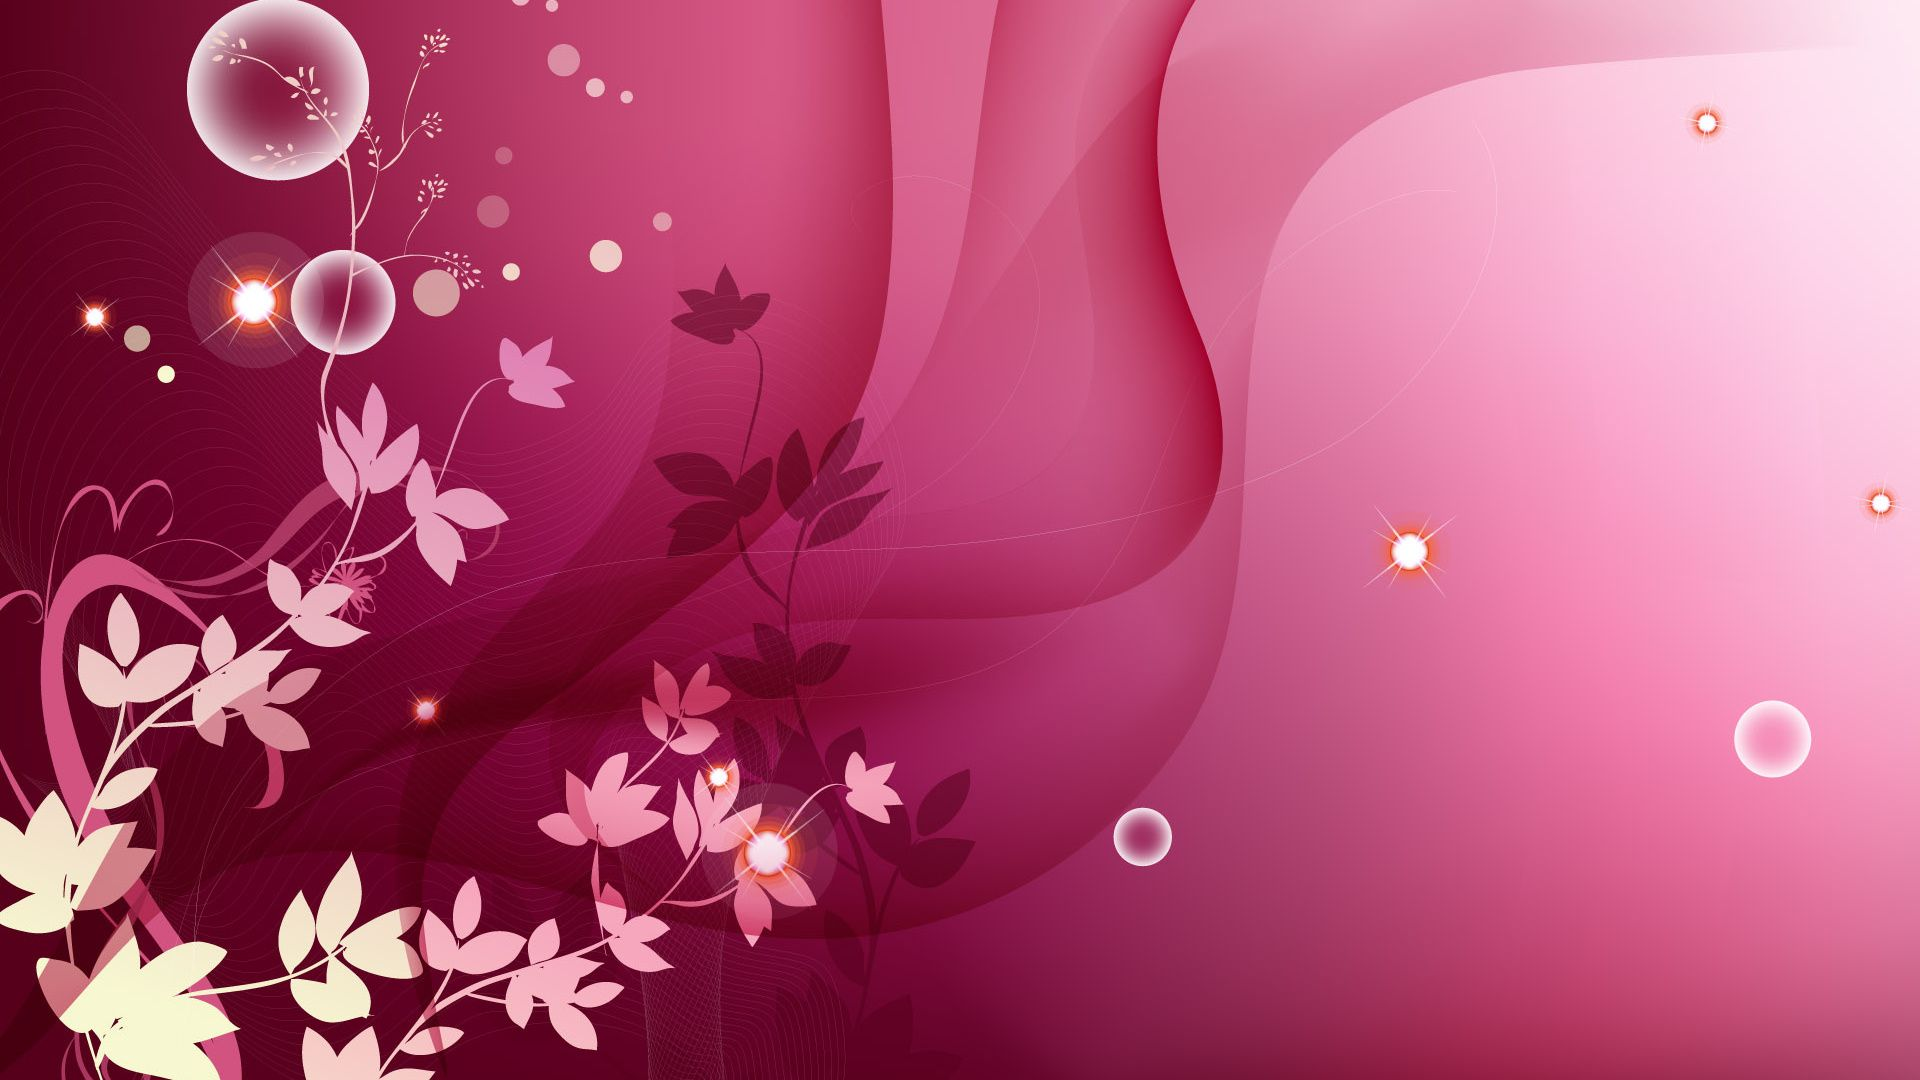 Wallpaper download girly - Find This Pin And More On Download Wallpaper By Wallpaper4676